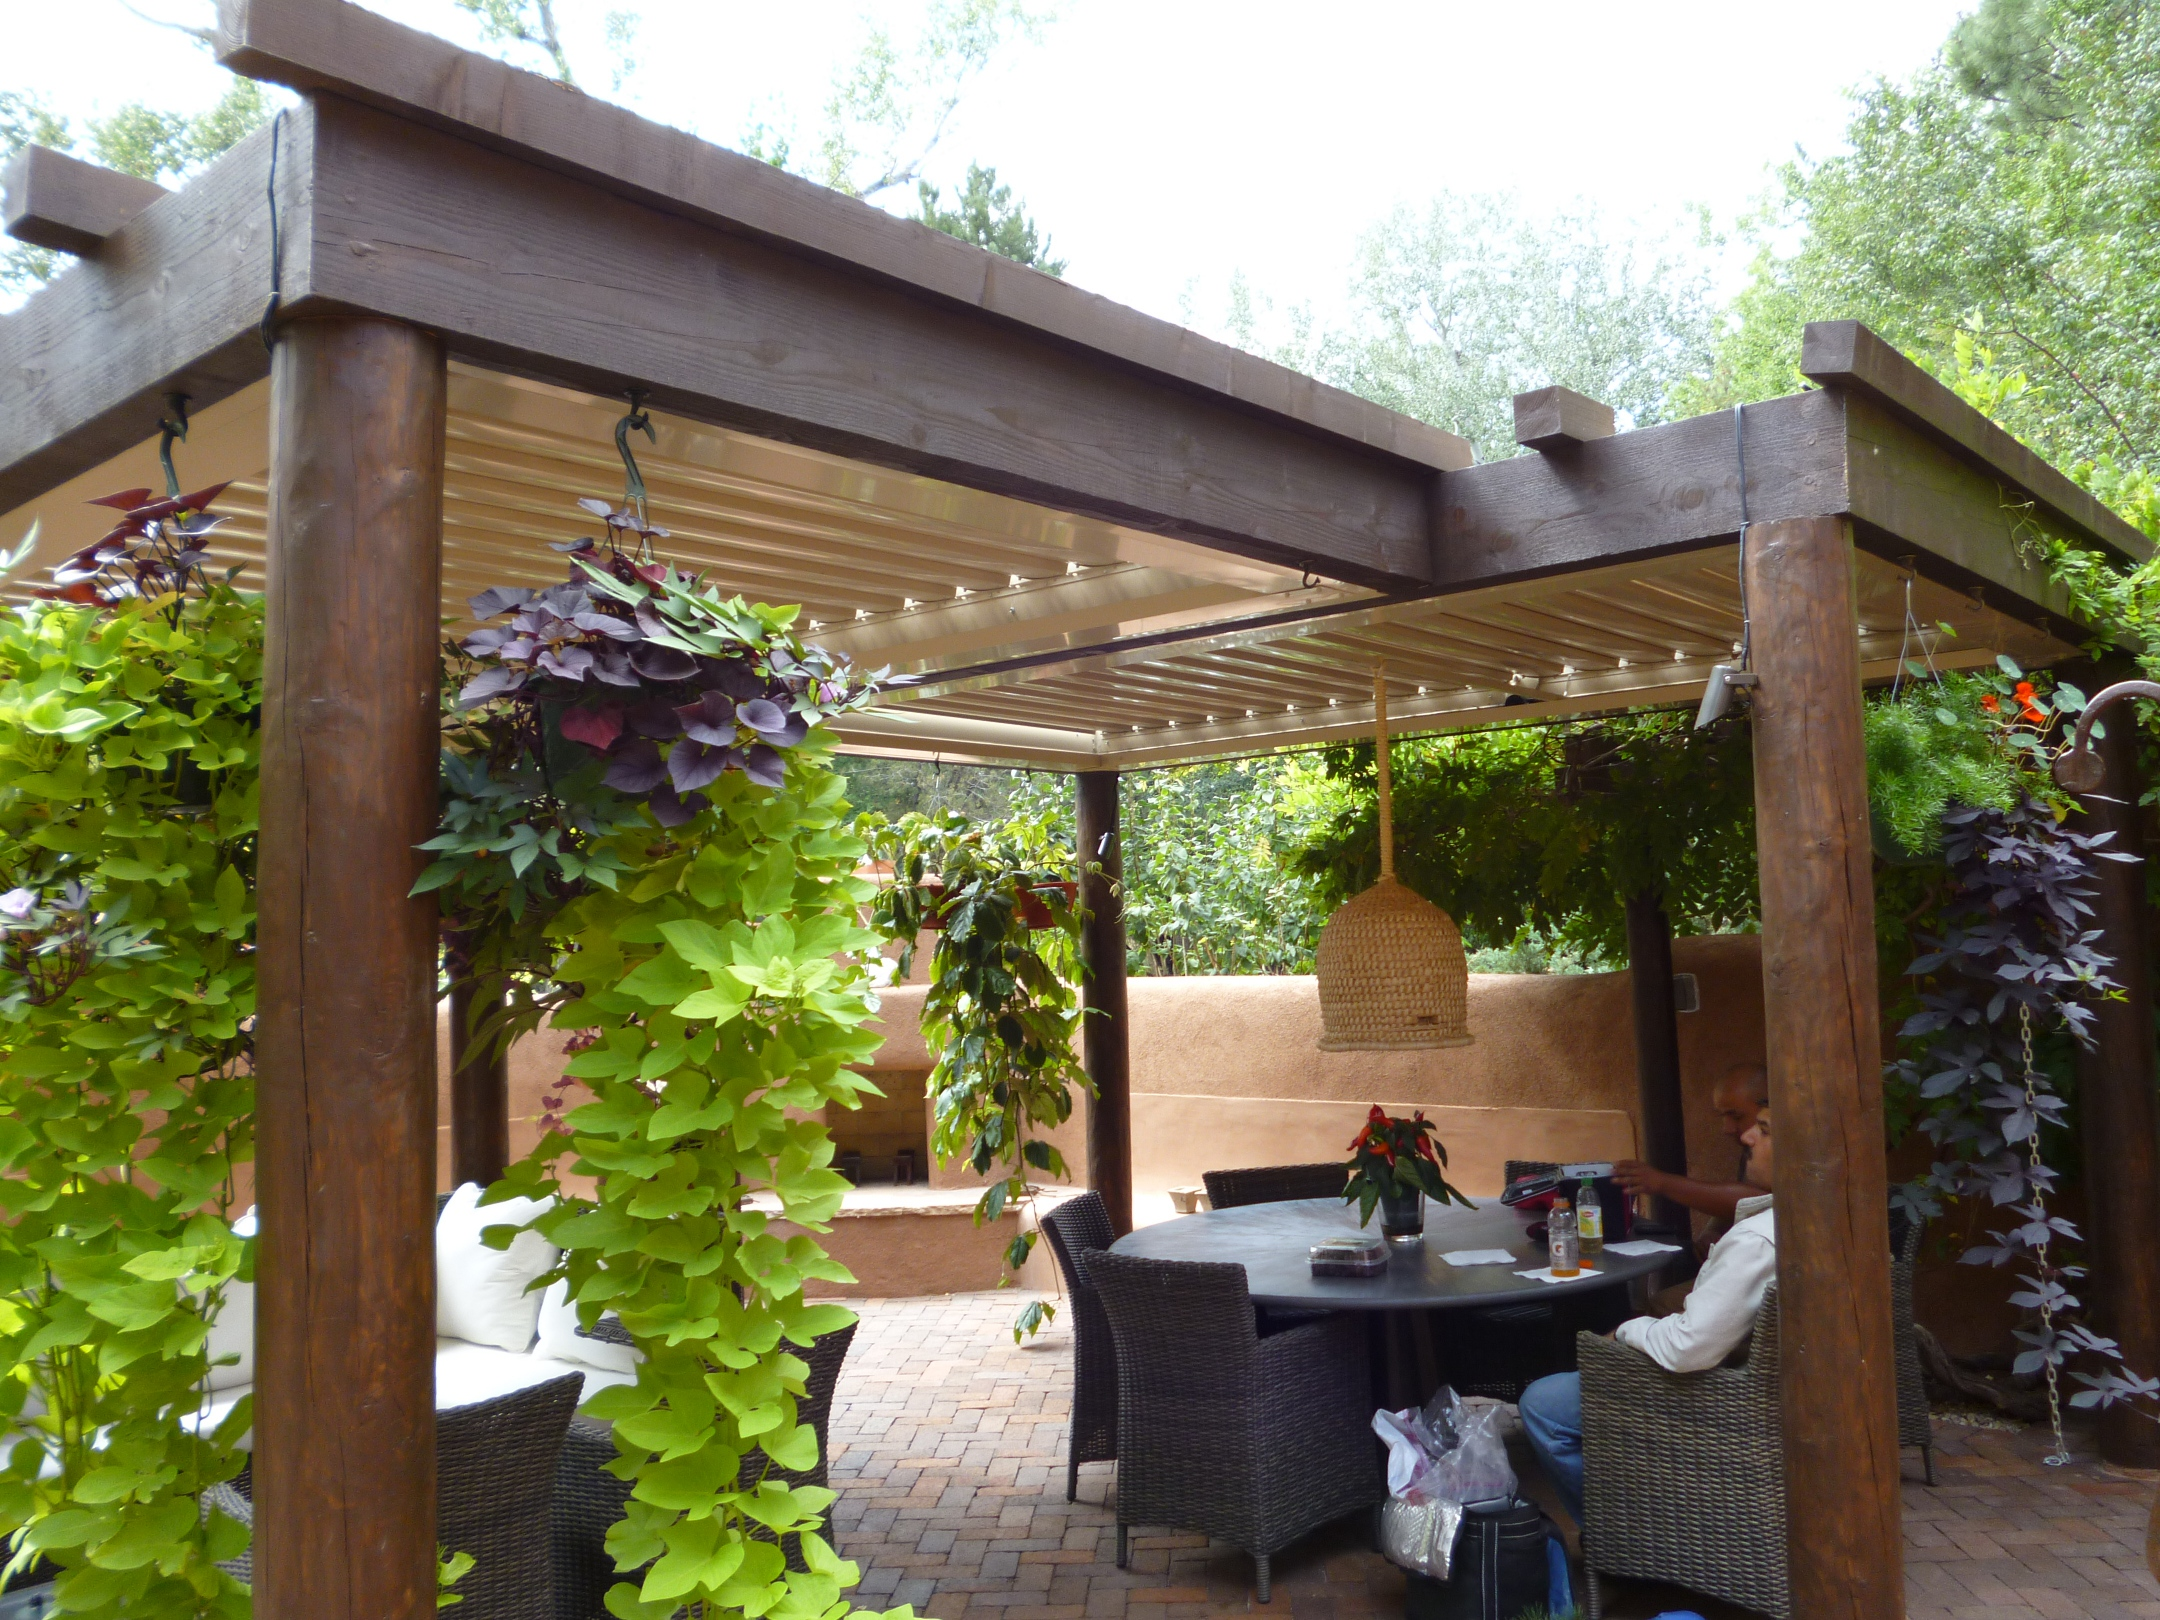 wood patio covers. Exellent Wood Wooden Patio Cover Design Decor With Hanging Plants And Grey Table Chair Set On Wood Covers